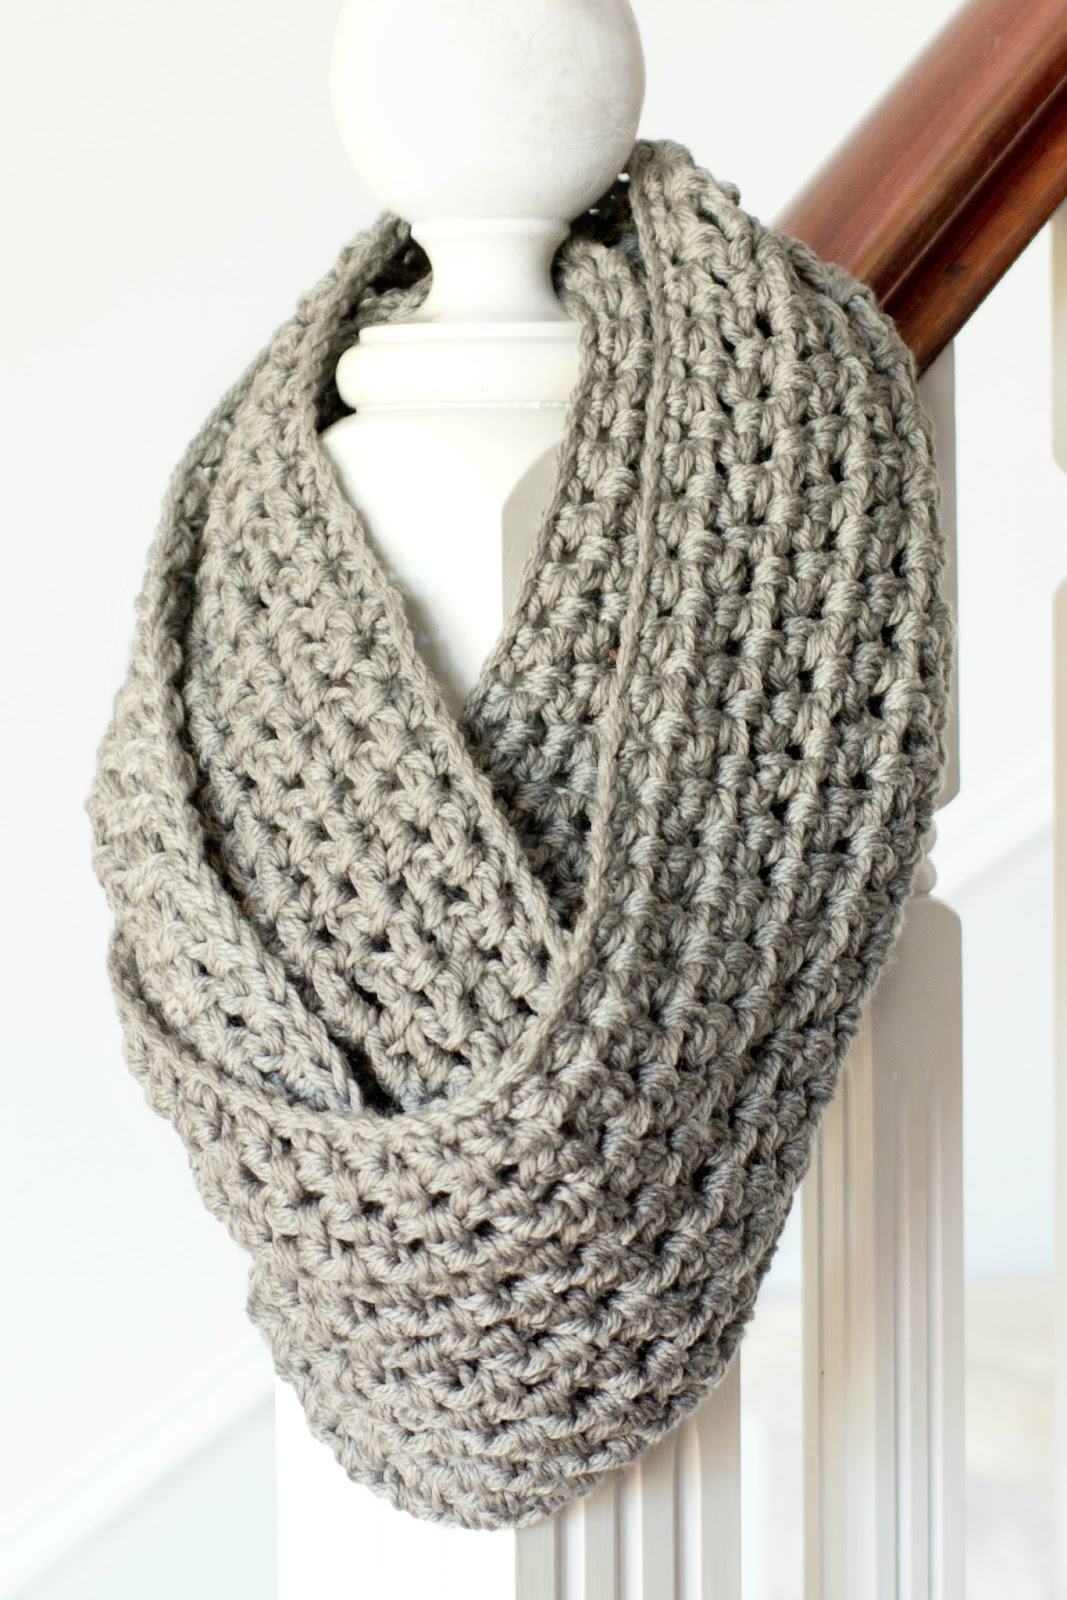 Crochet Scarf Pattern With Pictures : Hopeful Honey Craft, Crochet, Create: Basic Chunky ...